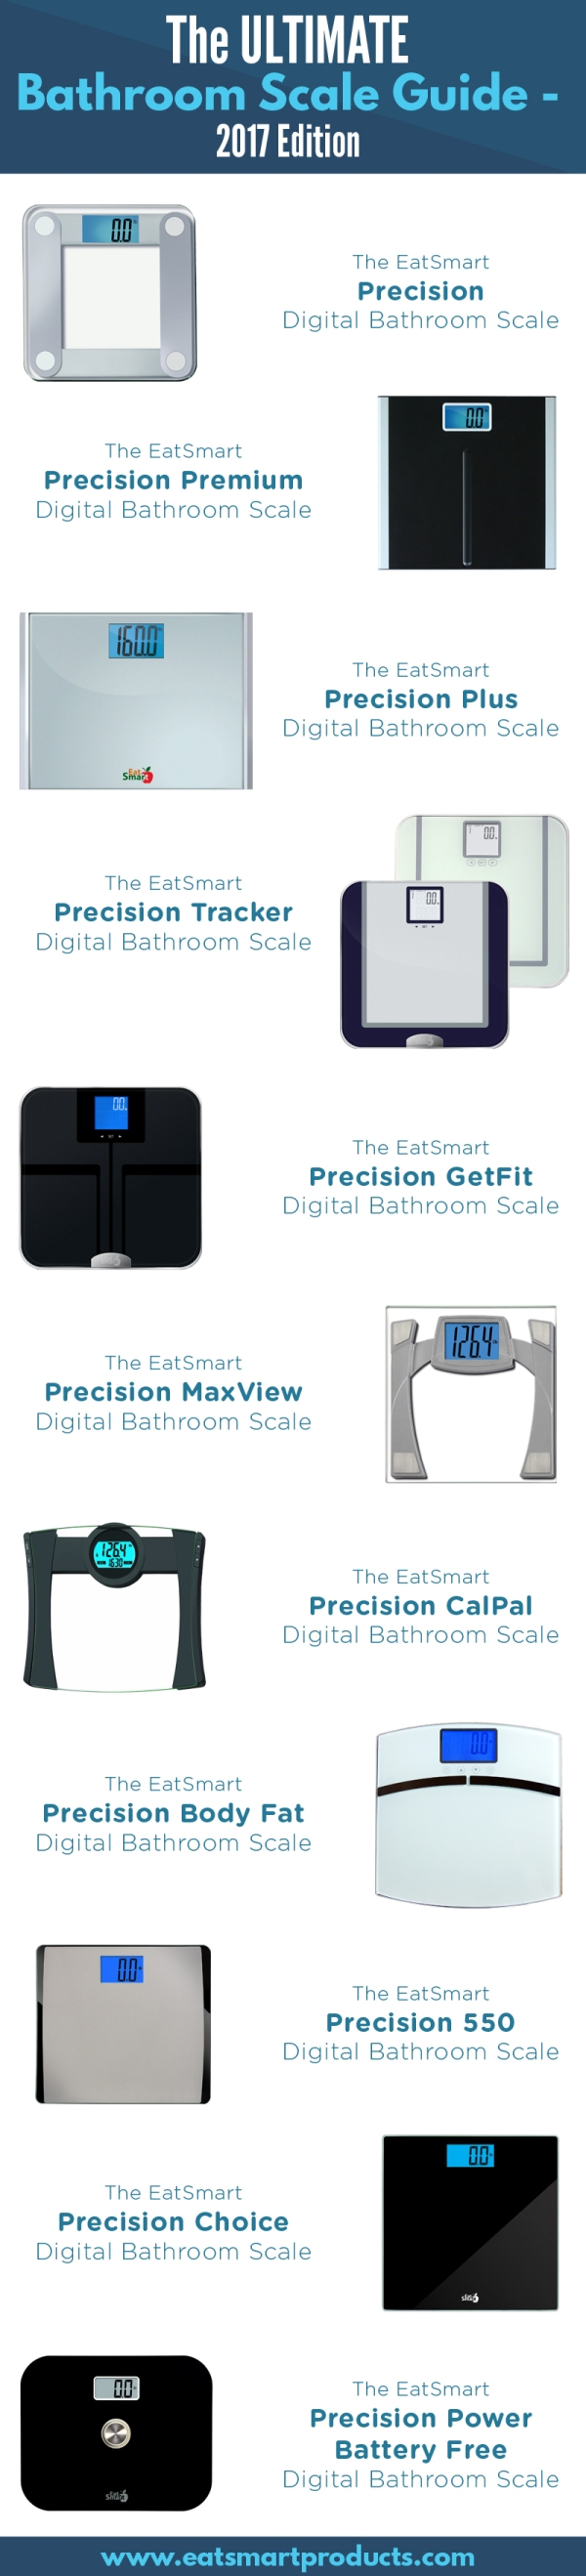 Most accurate bathroom scale 2014 - Pin It Esp_ultimate_bathroom_scale_guide_list